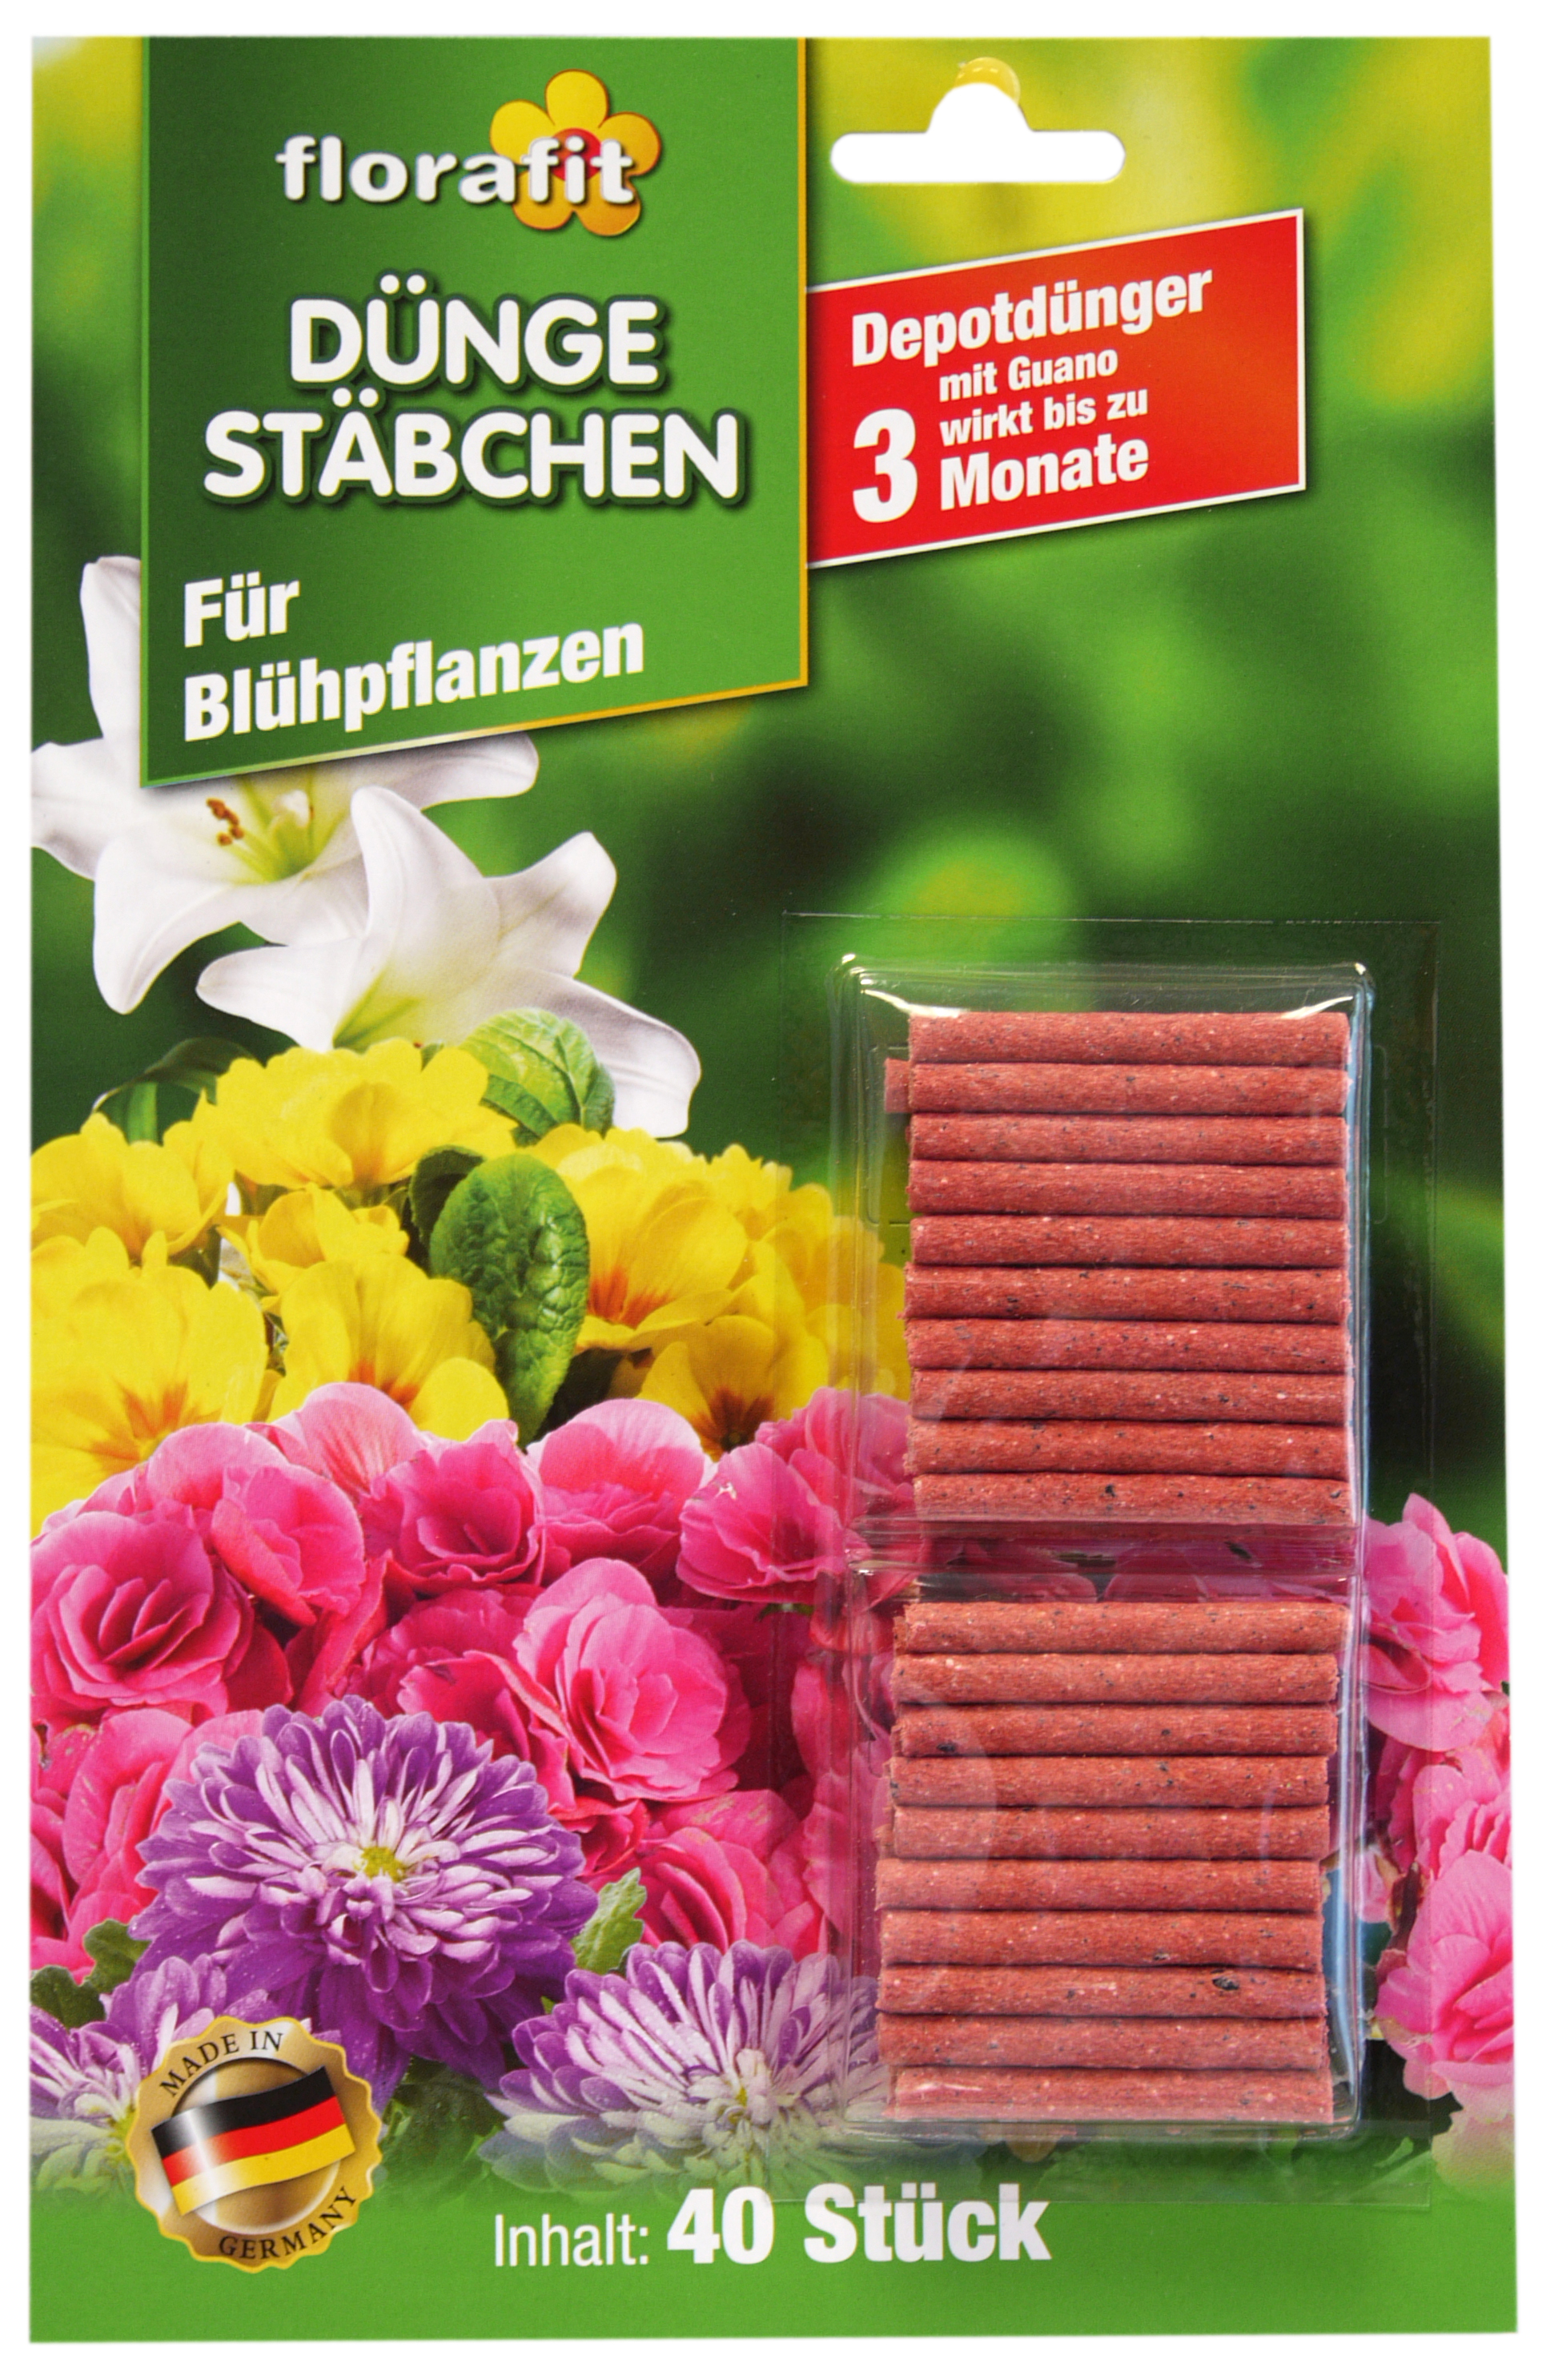 02250 - fertilizer sticks for flowers, 40 pcs blistered